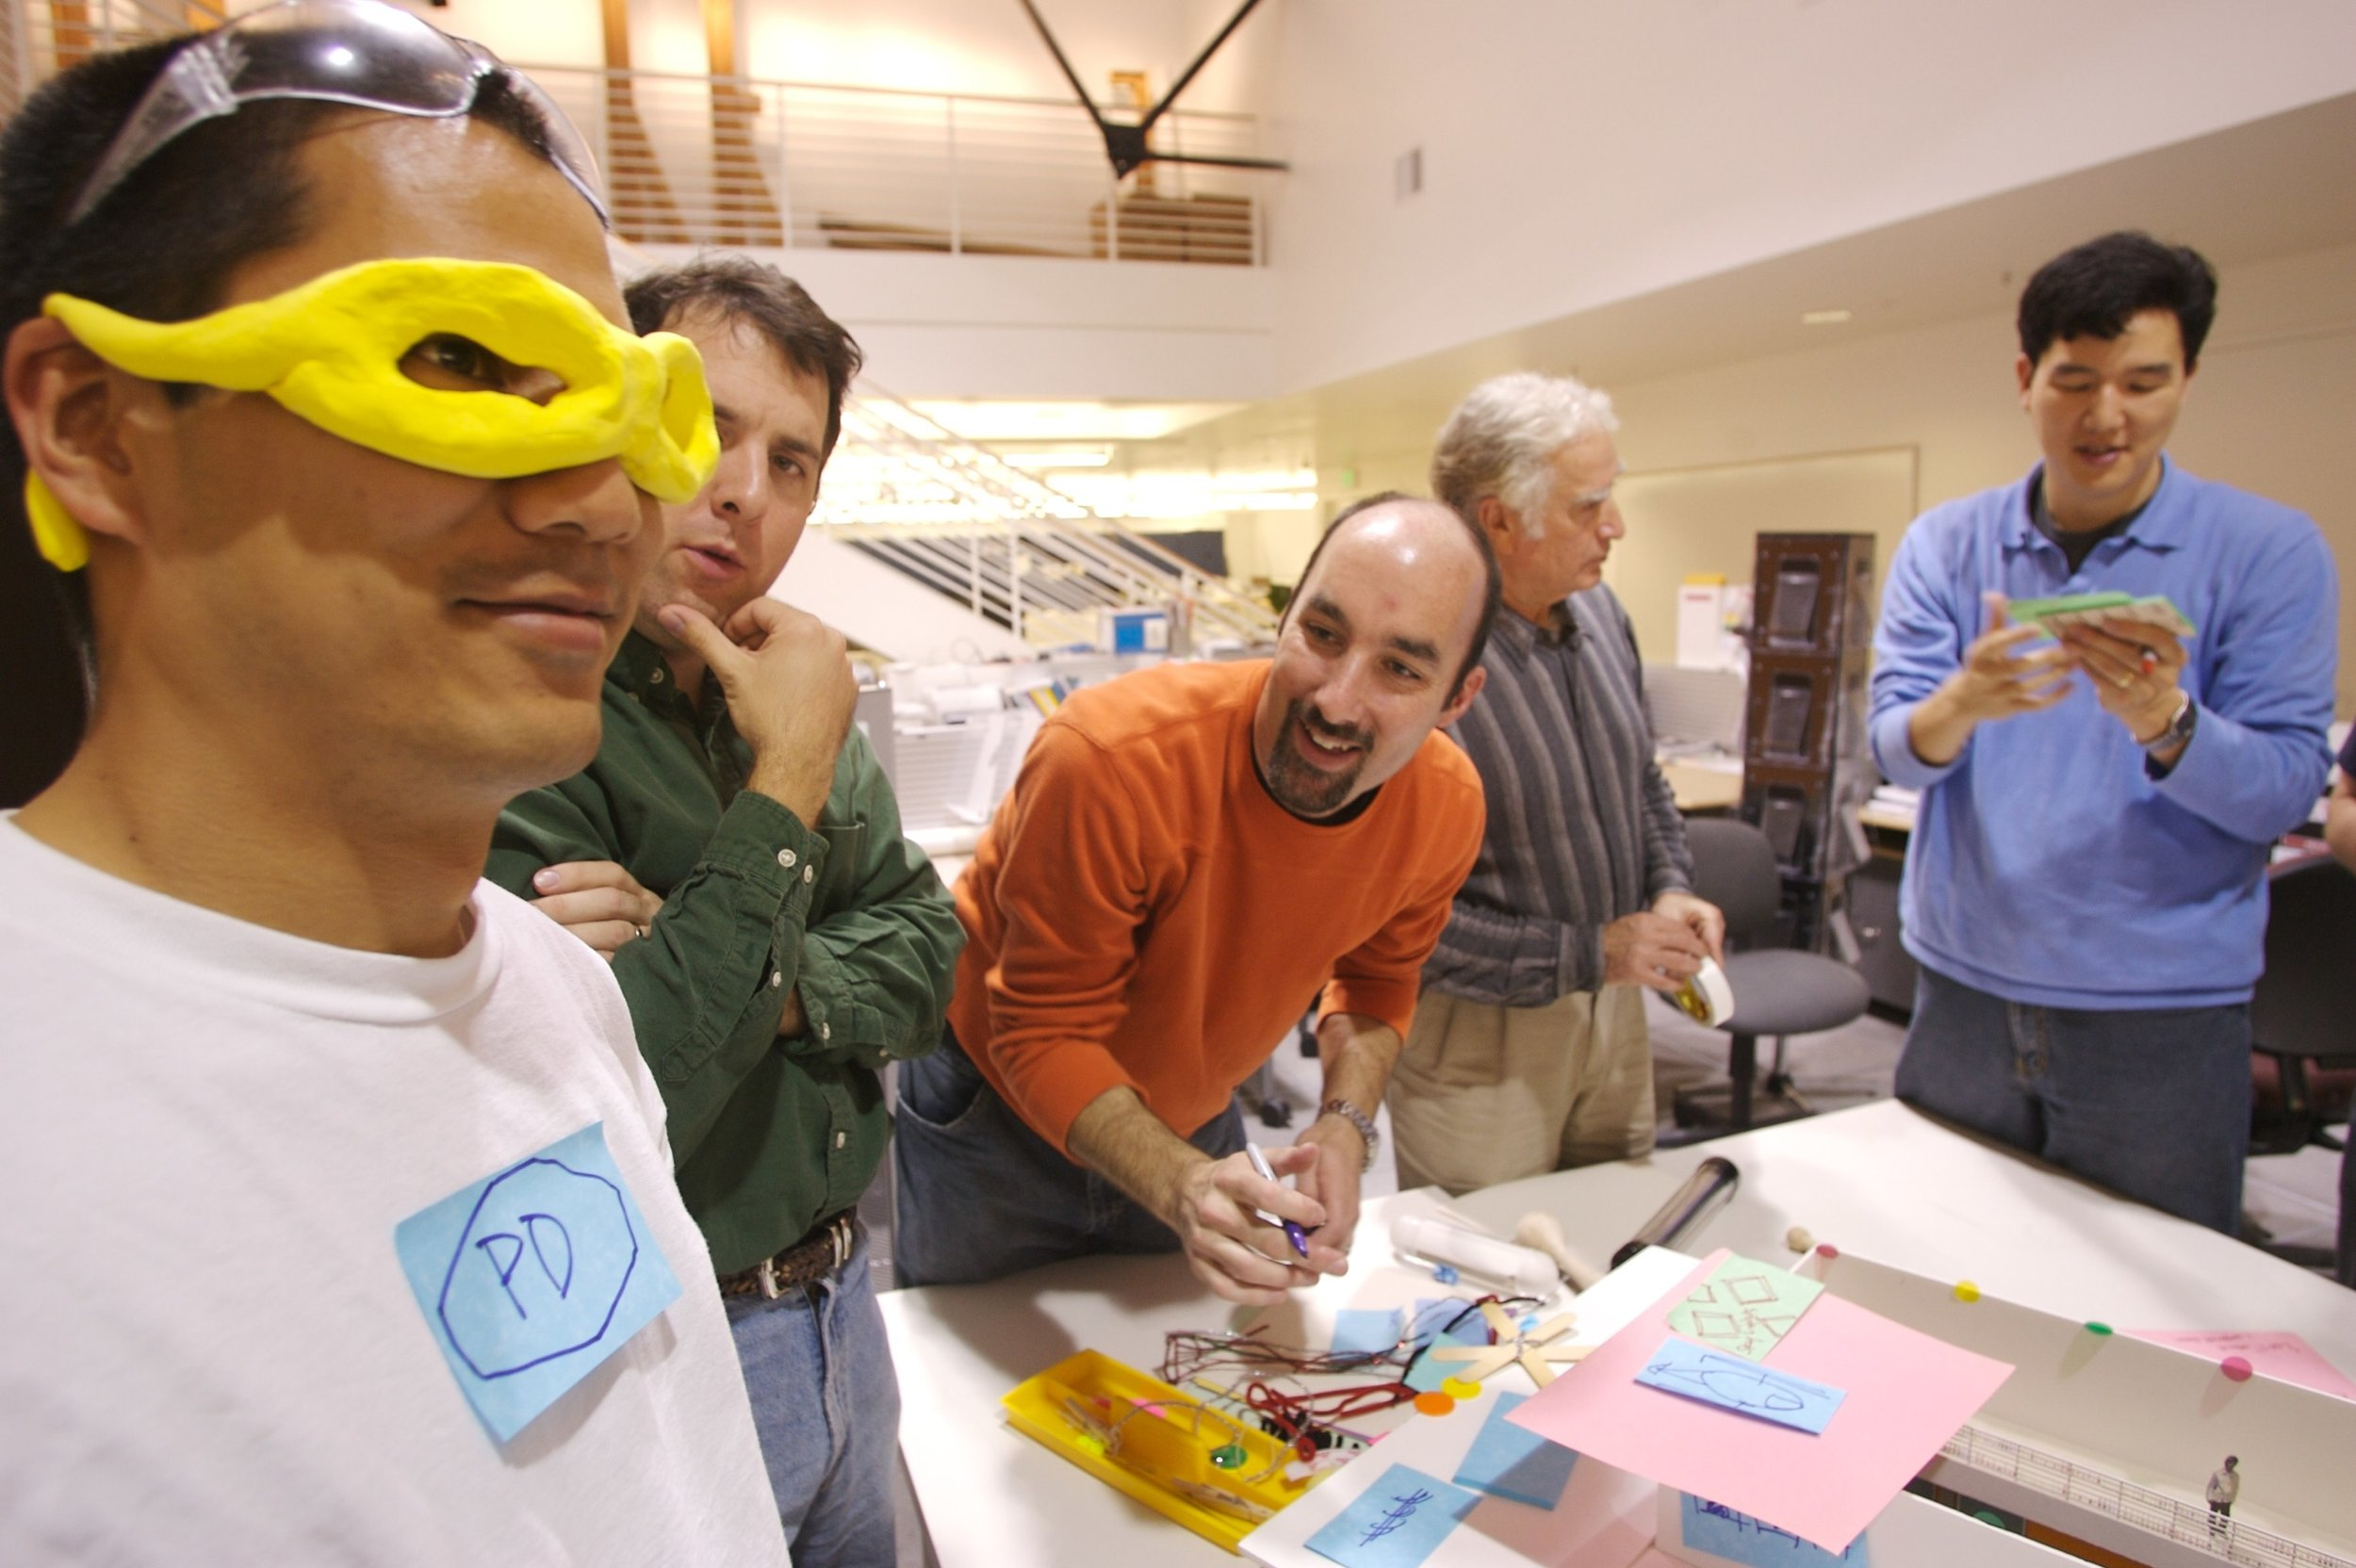 George Kembel and Bernie Roth engage students in an early d.school class prototype.